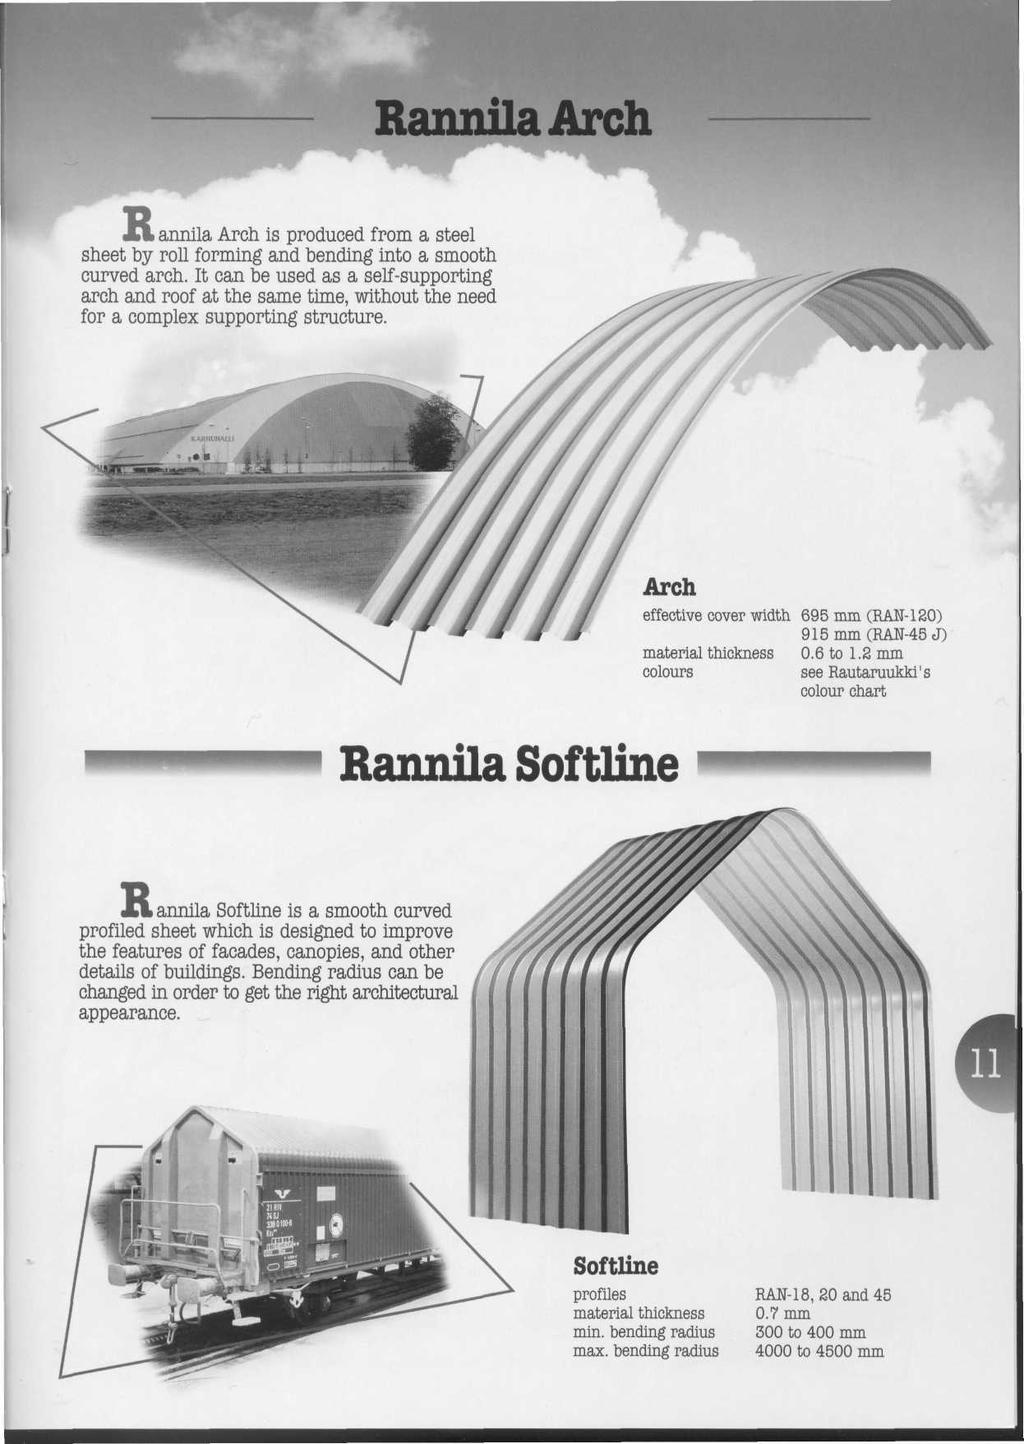 RanmlaArch > annila Arch, is produced from a steel sheet by roll forming and bending into a smooth curved arch.